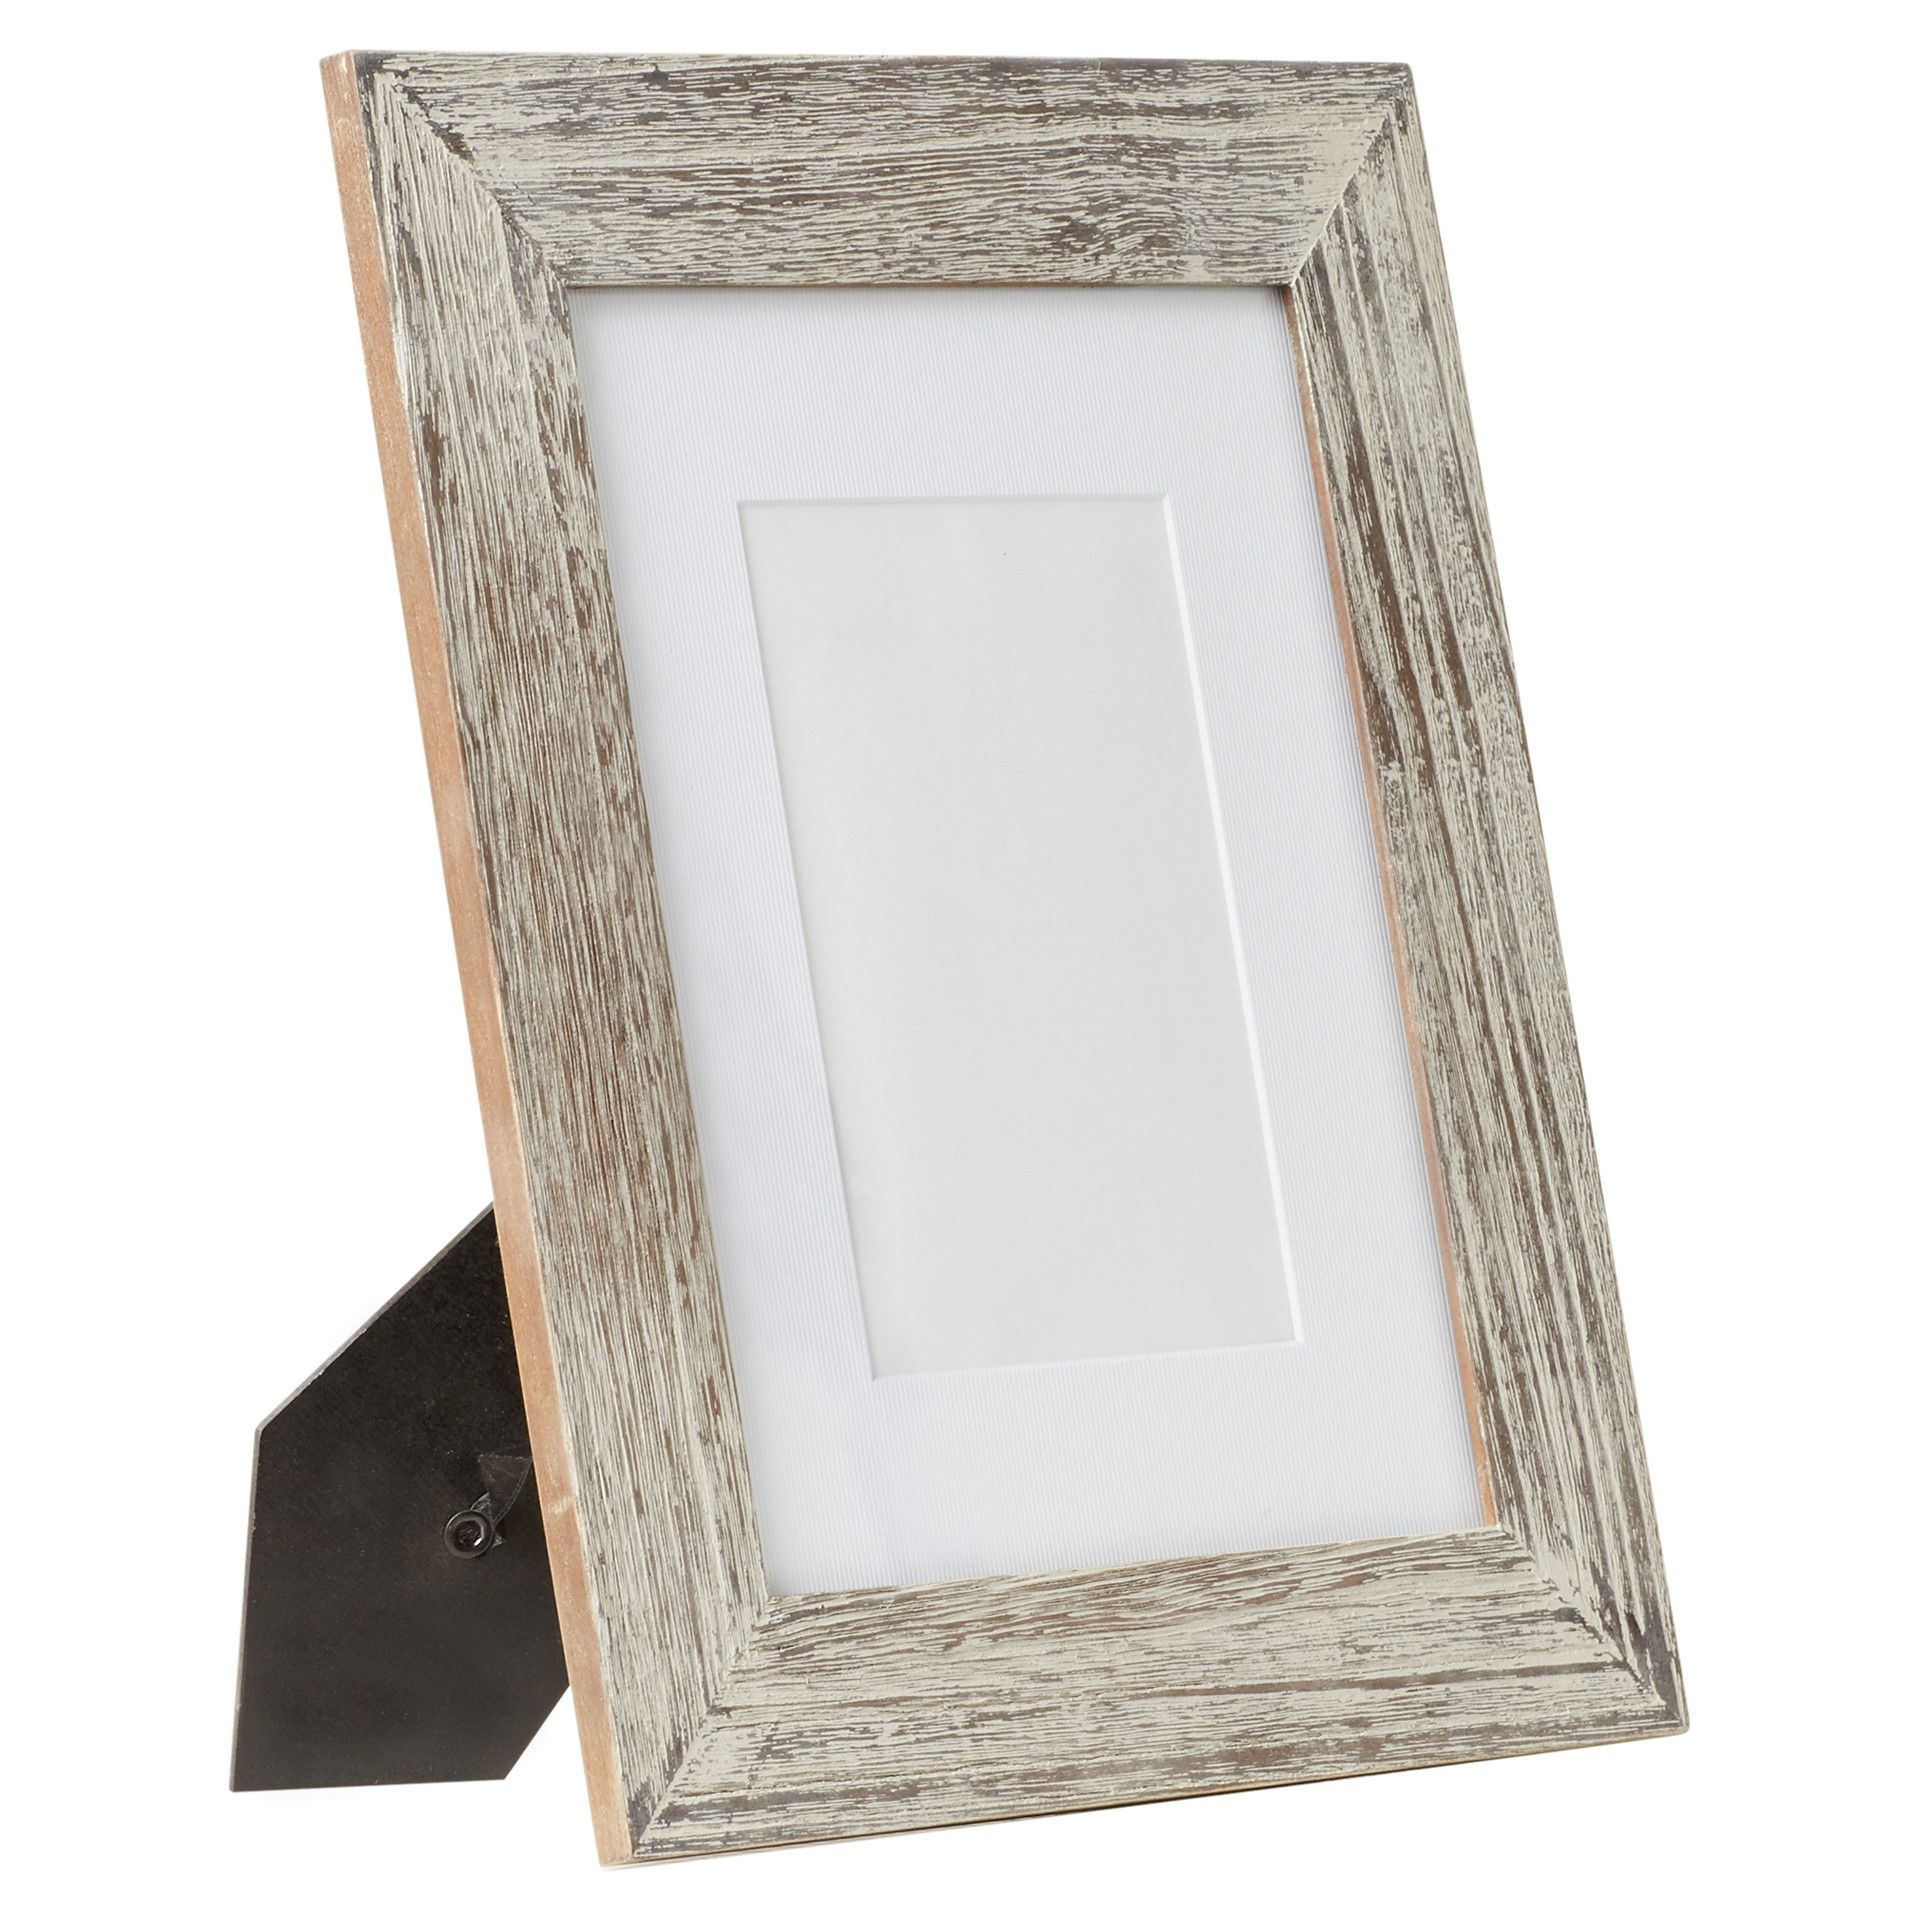 Features frame material wood back material masonite wall features frame material wood back material masonite wall jeuxipadfo Image collections